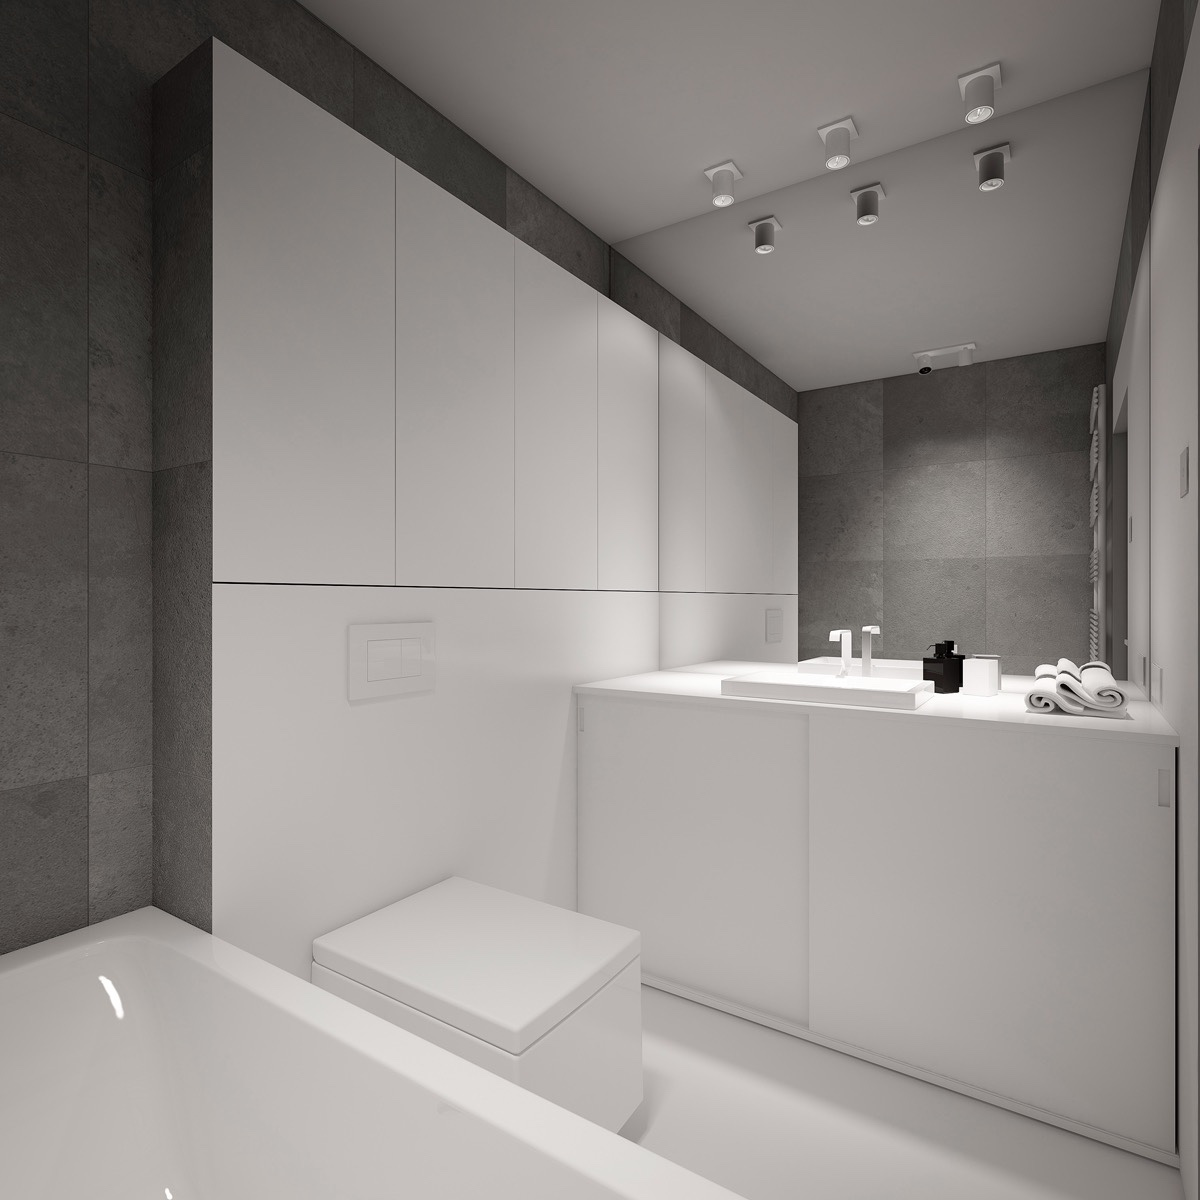 White walls run through to the bathroom, through the use of high cabinetry. With an all-white porcelain bath and toilet, high-block sinks and splash-back wall, large-format slate tiles are a welcome break.